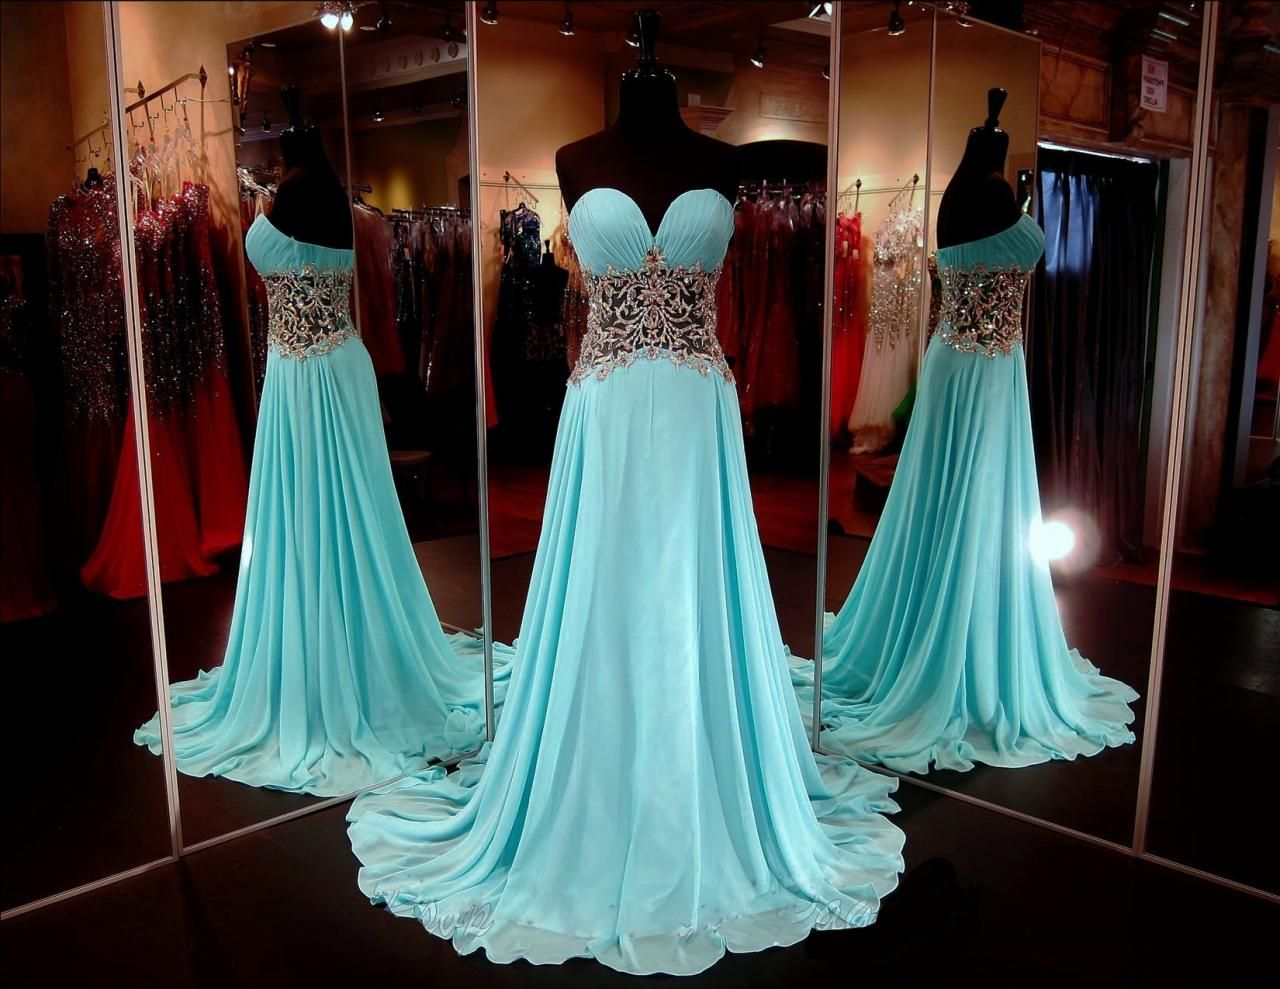 Blue Prom Dresses,A-Line Prom Dress,Sparkle Prom Dress,Strapless ...